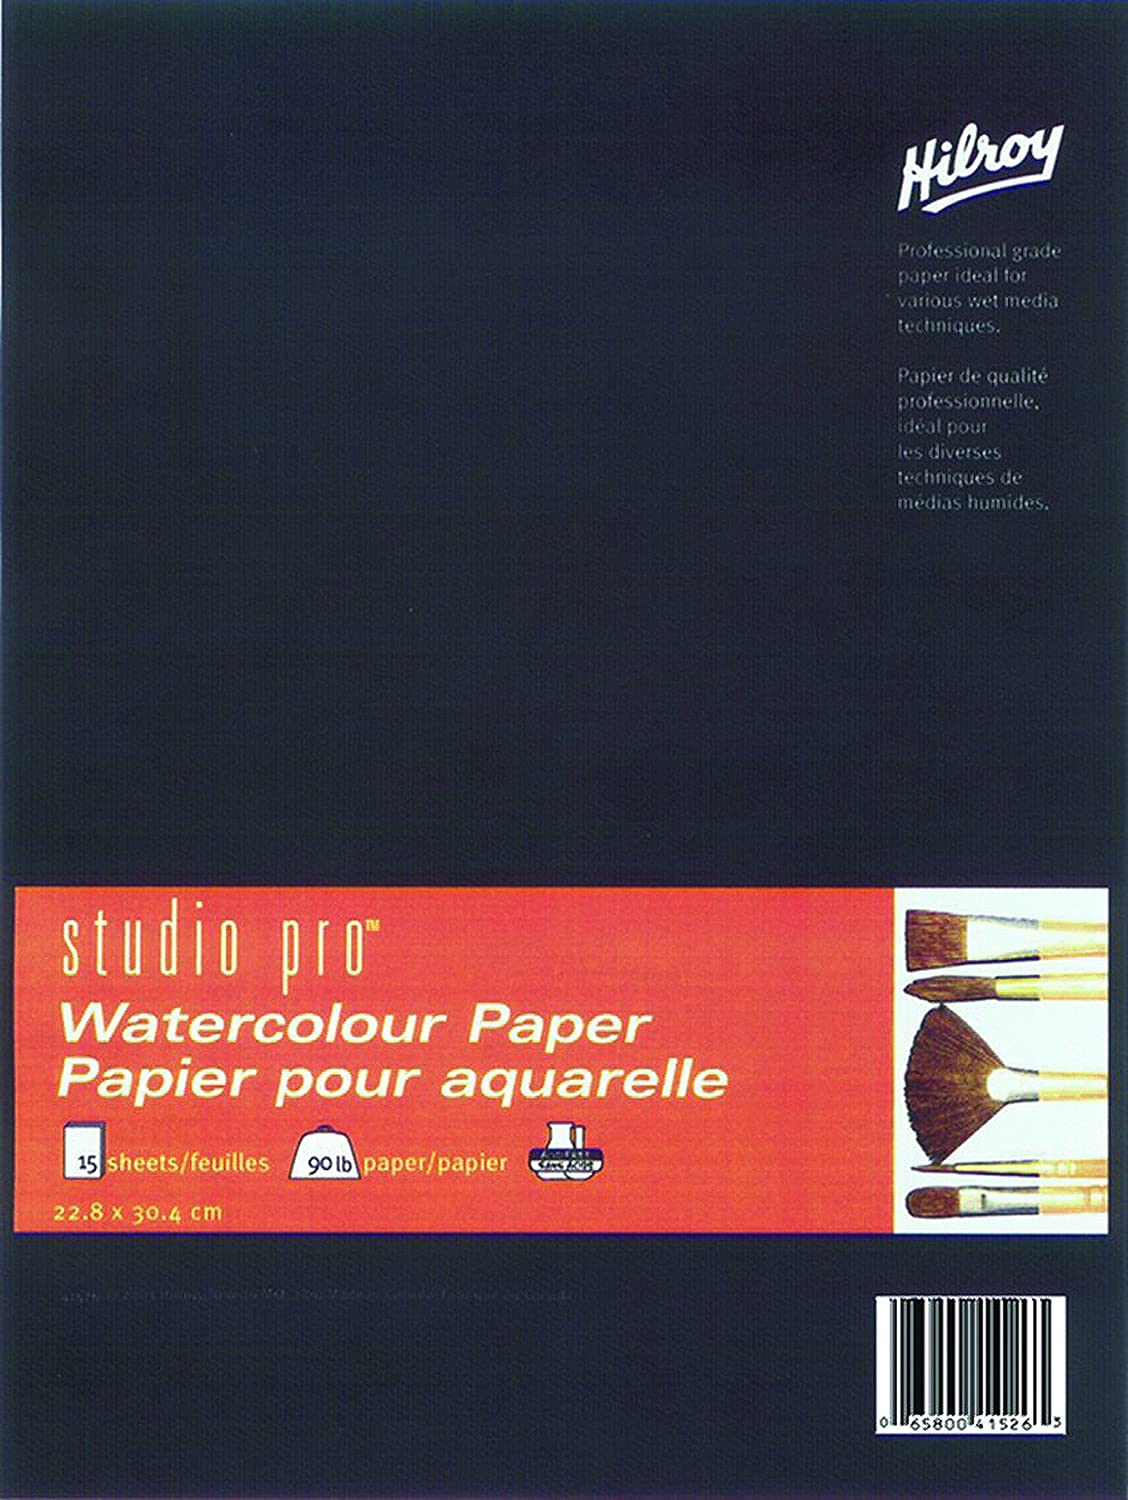 Studio Pro 41526 Watercolor Book, 9x12-Inch, 90-Pound Acid Free Paper, 15-Sheet